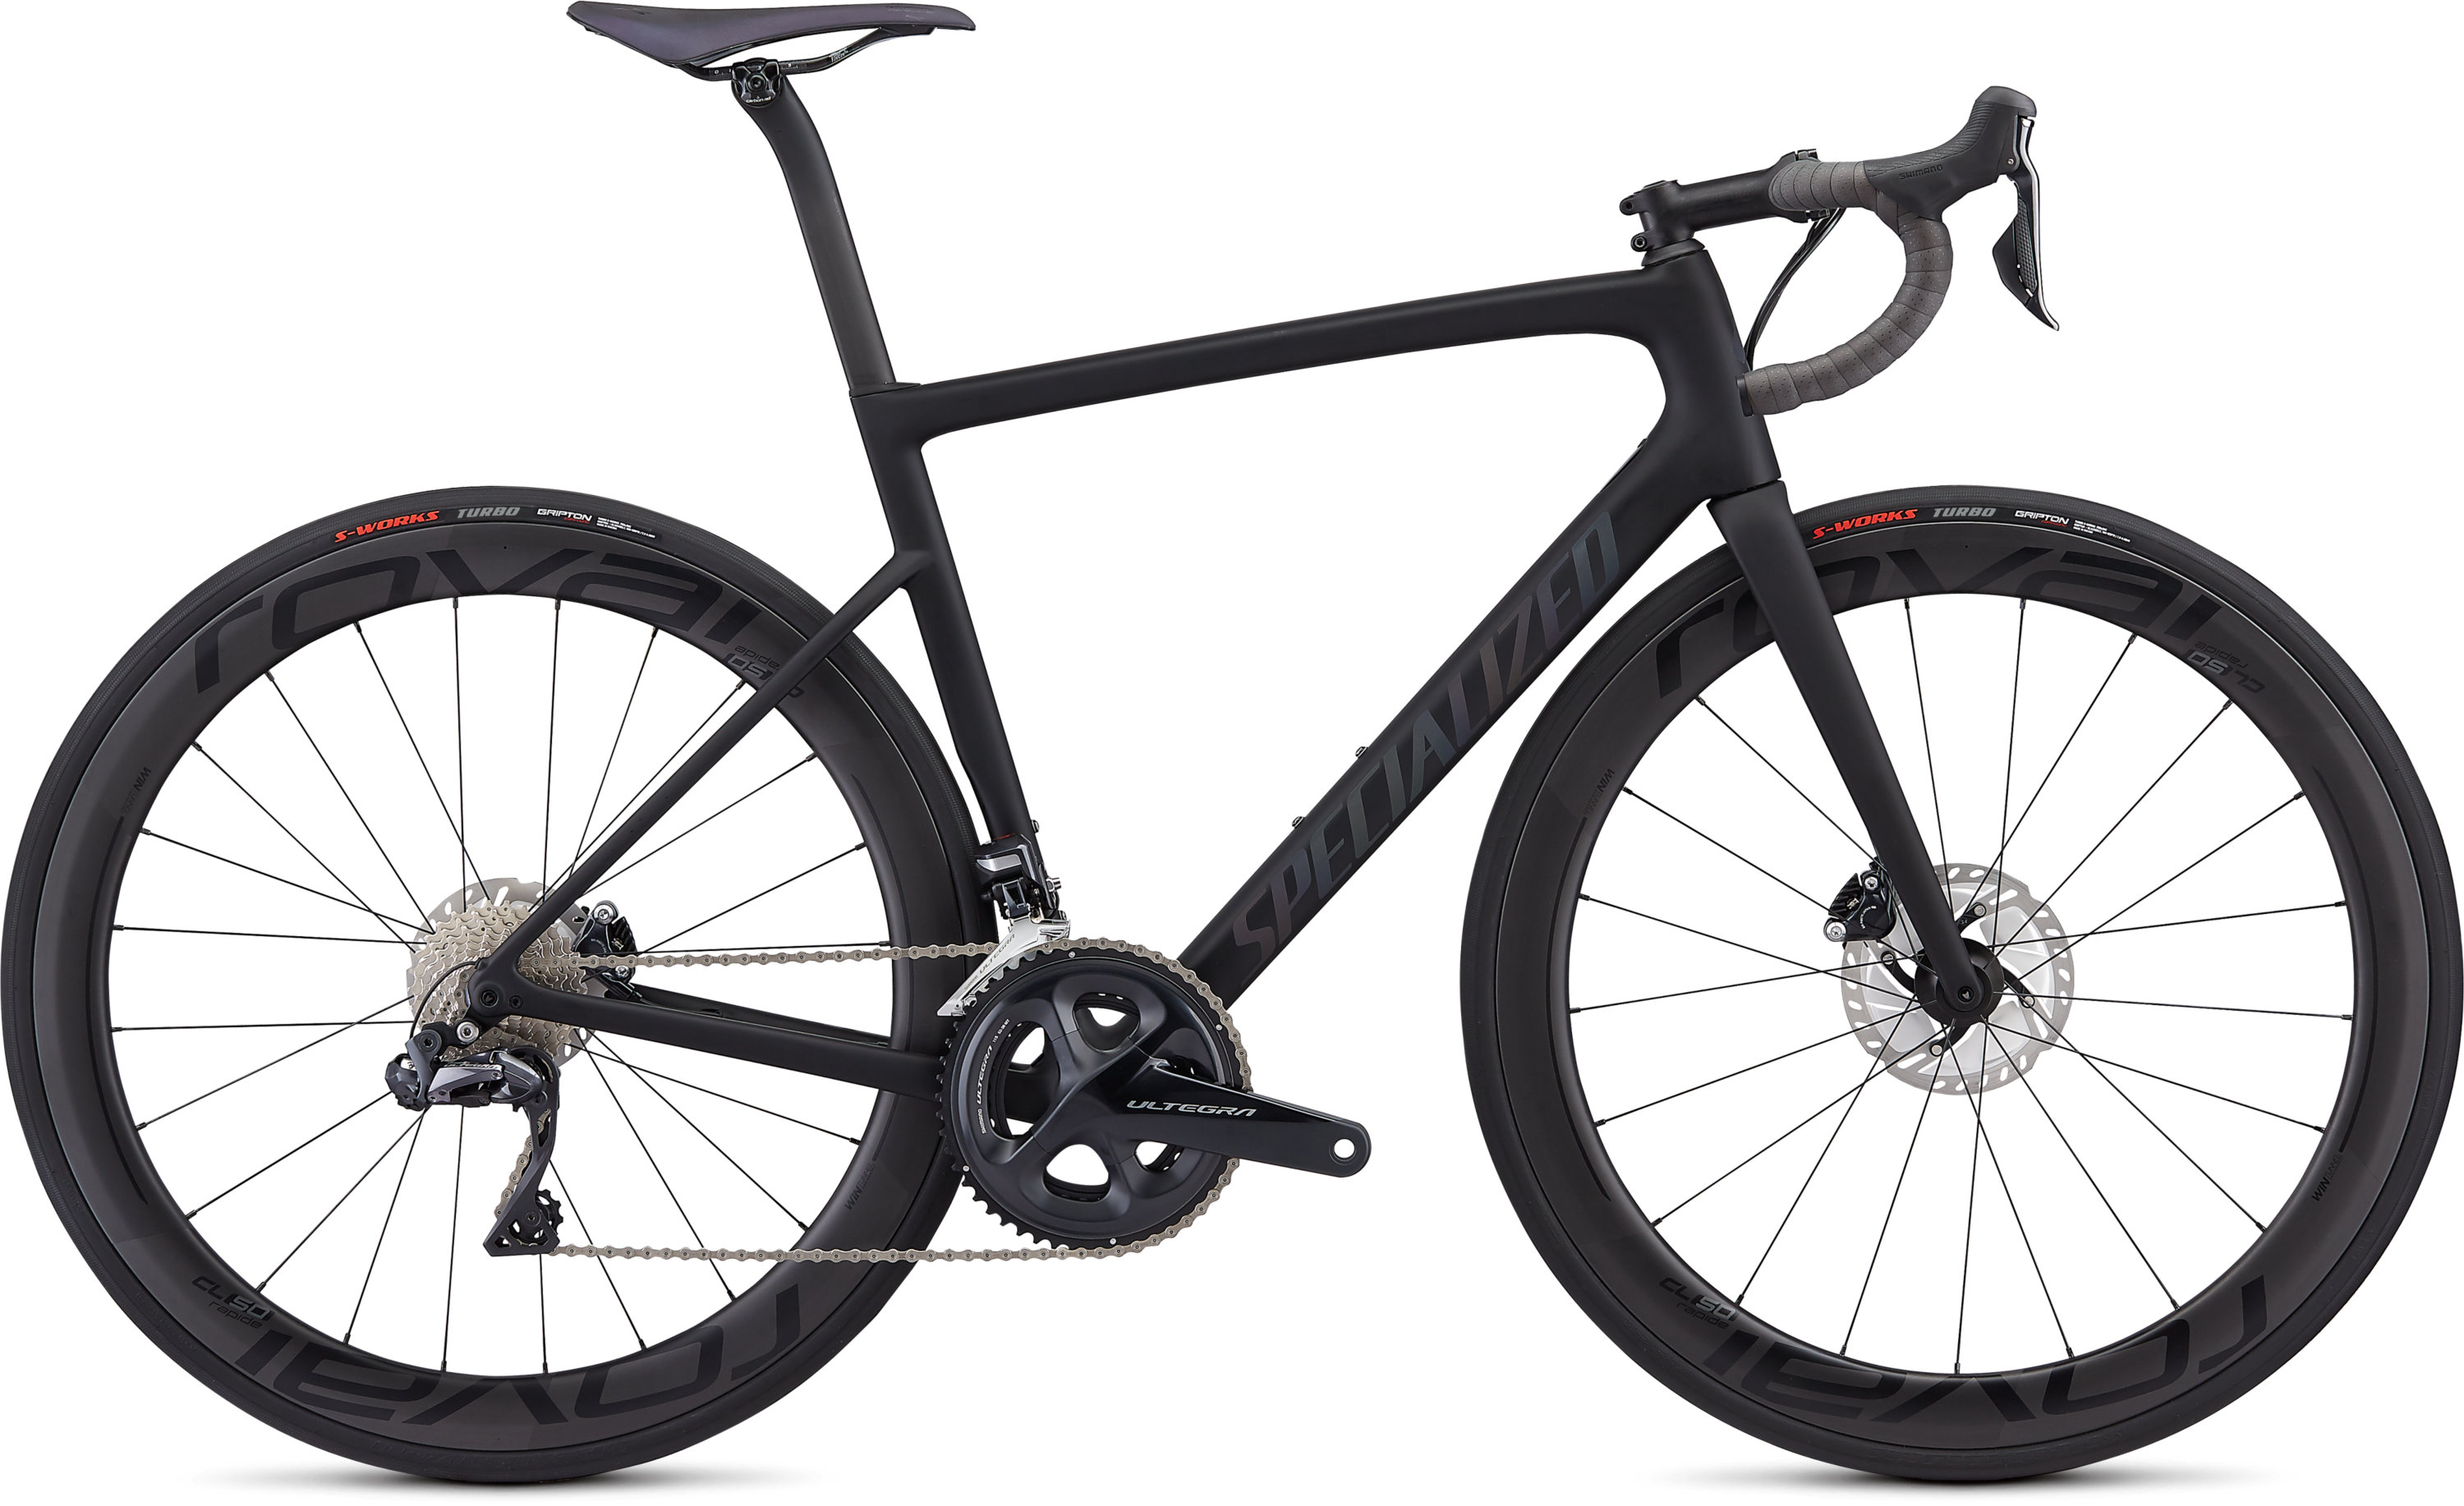 Specialized Men´s Tarmac Disc Pro Black/Holographic Black 56 - Specialized Men´s Tarmac Disc Pro Black/Holographic Black 56